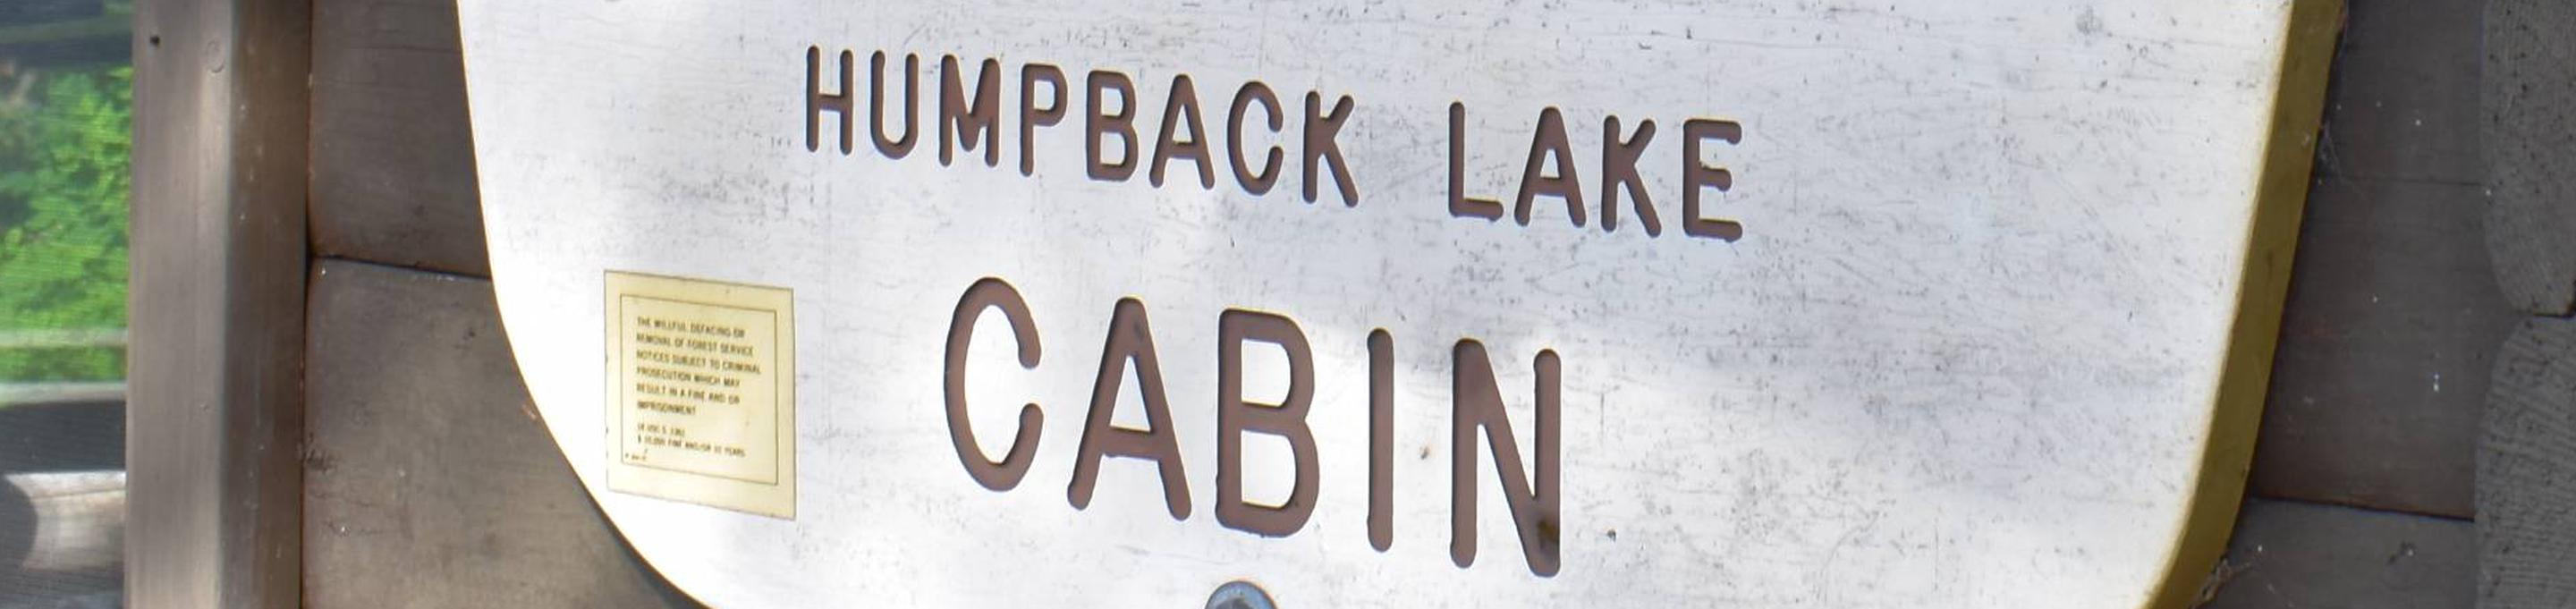 Humpback Lake Sign